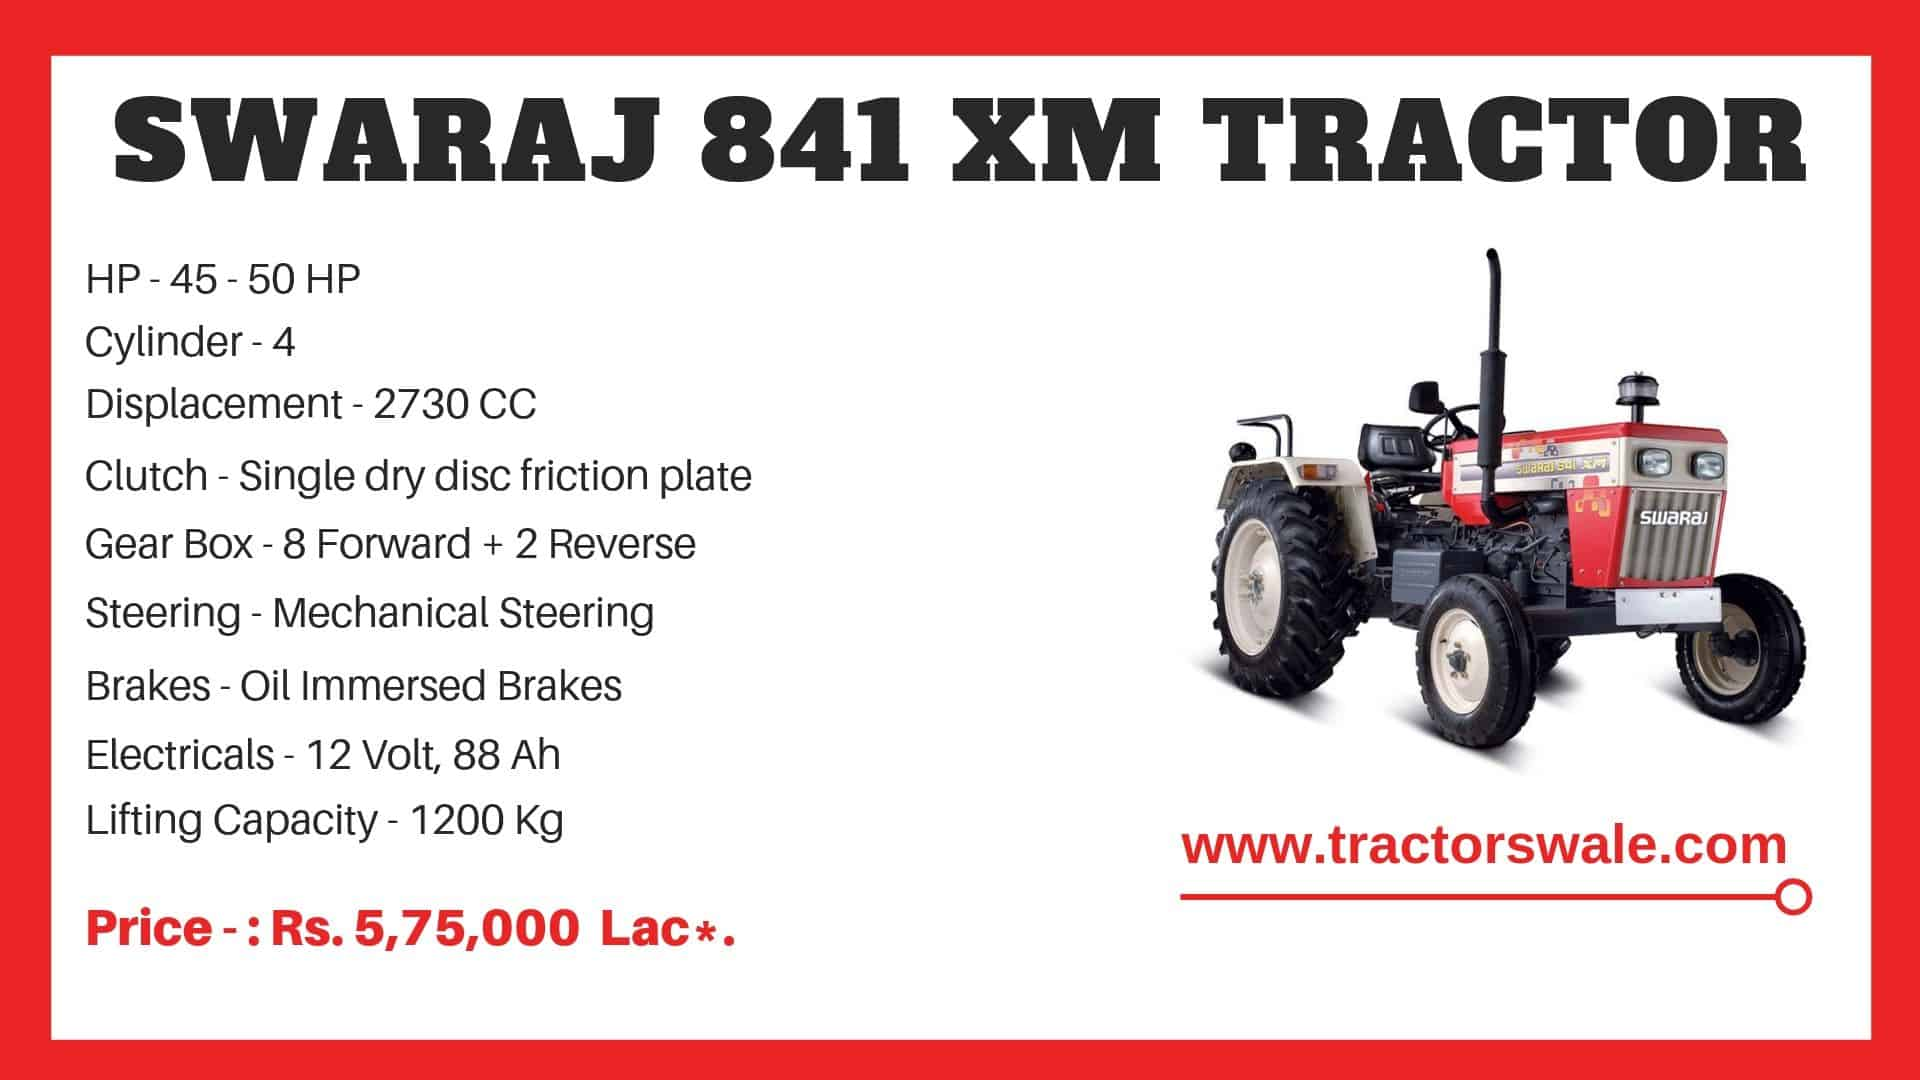 Specification of Swaraj 841 XM Tractor